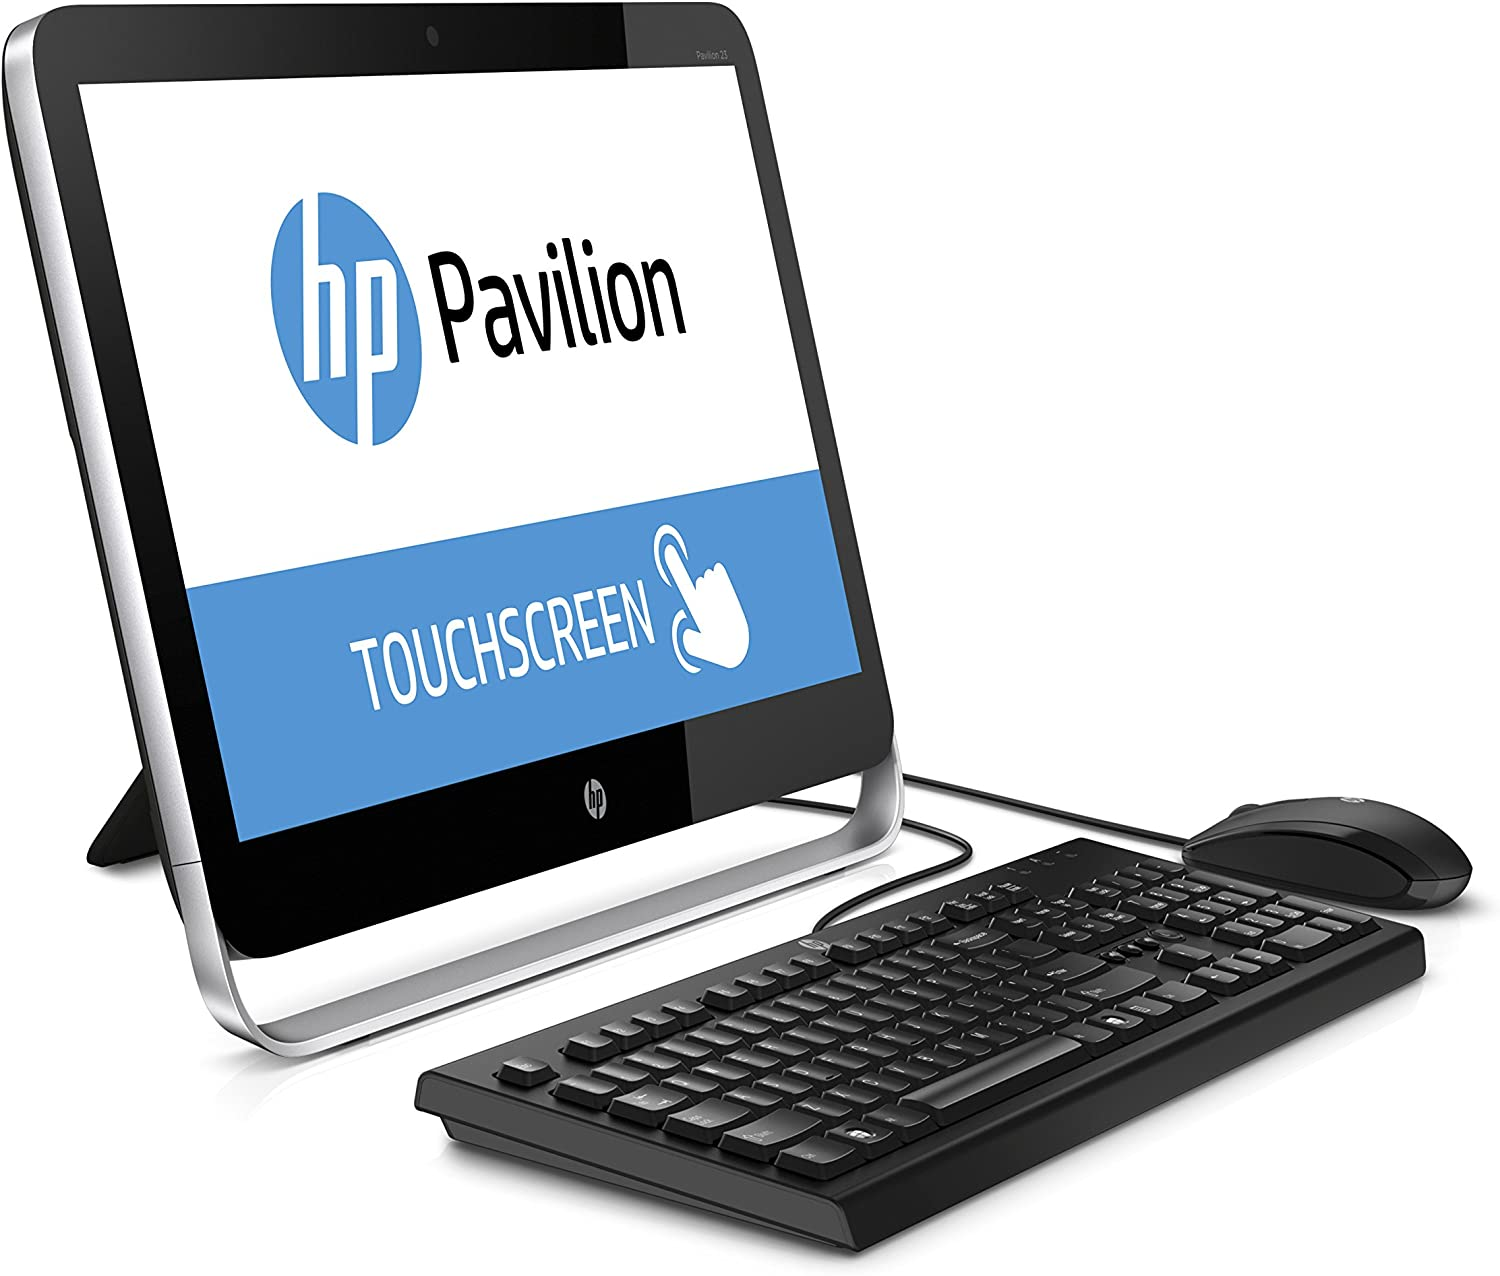 HP Pavilion 23-p110 23-Inch All-in-One Desktop (Black) (Discontinued by Manufacturer)